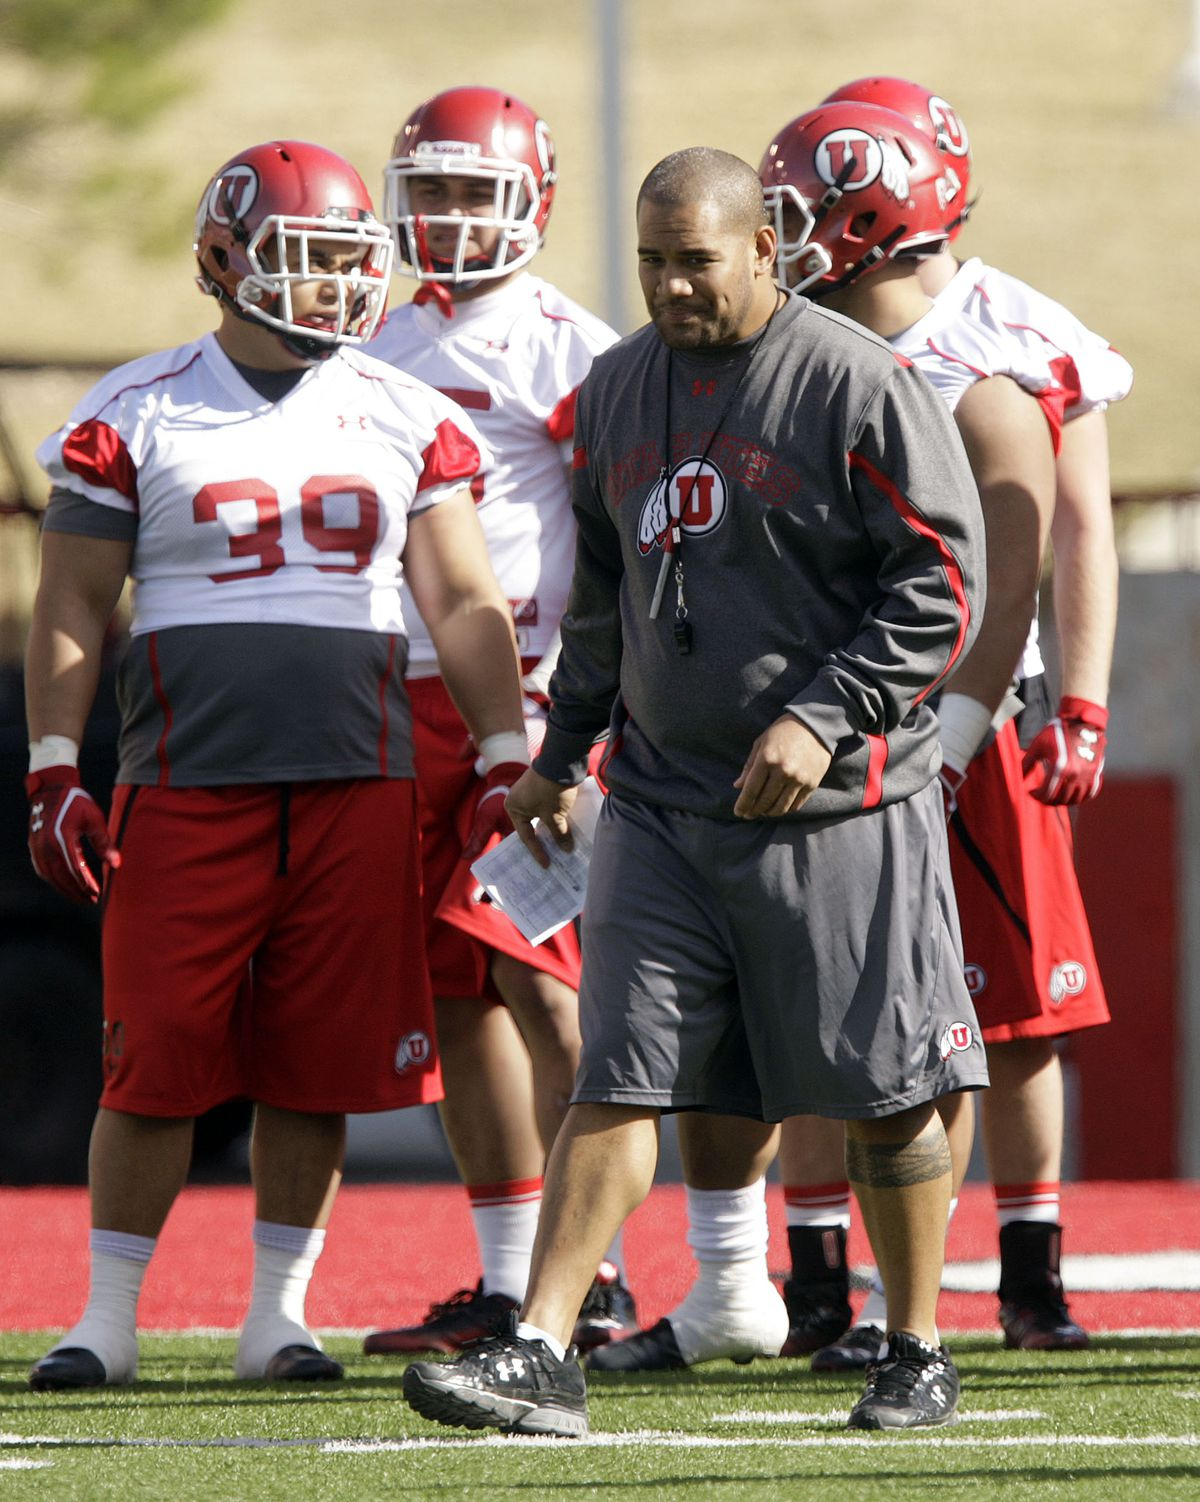 Utah Utes coach Ilaisa Tuiaki works with players in the first spring football practice in Salt Lake City Tuesday, March 20, 2012.